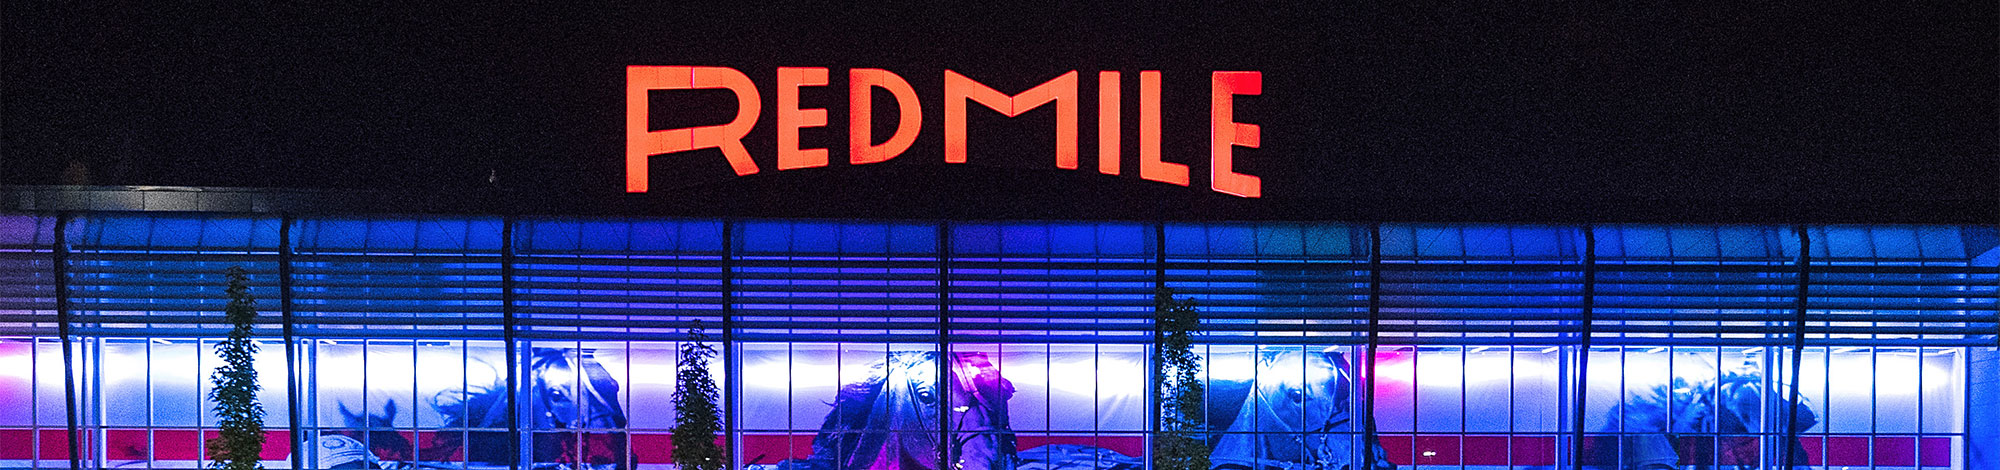 Red Mile at night